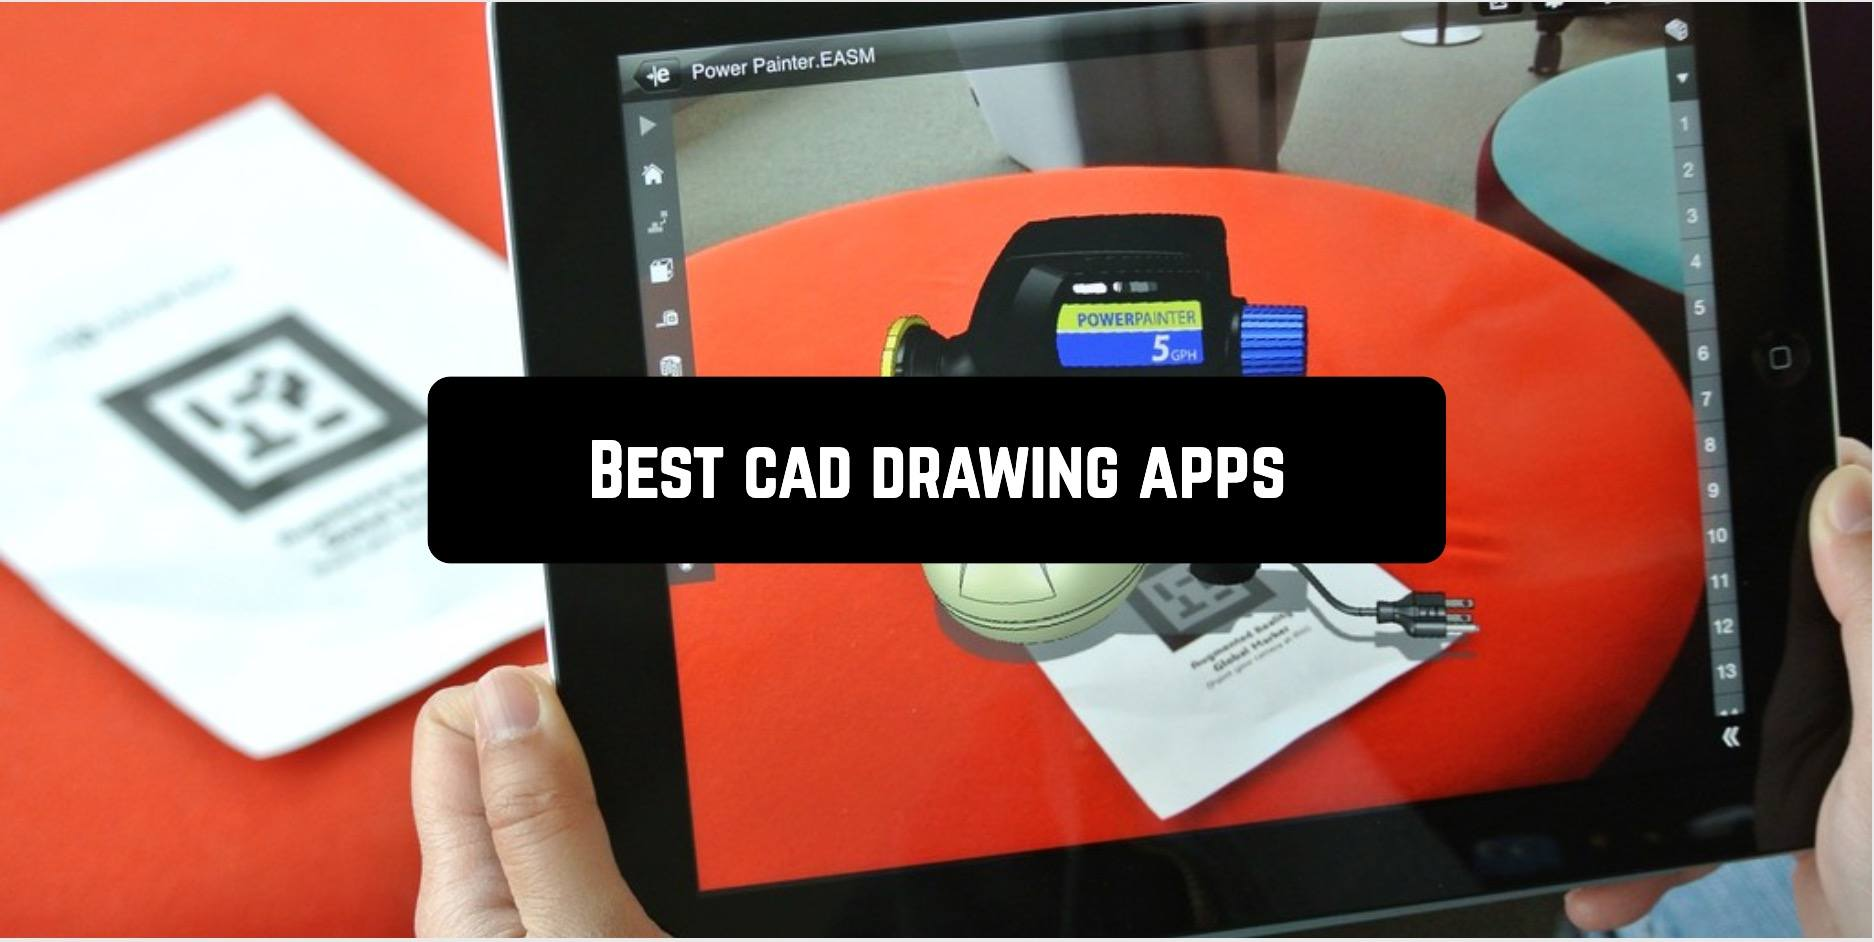 Best cad drawing apps